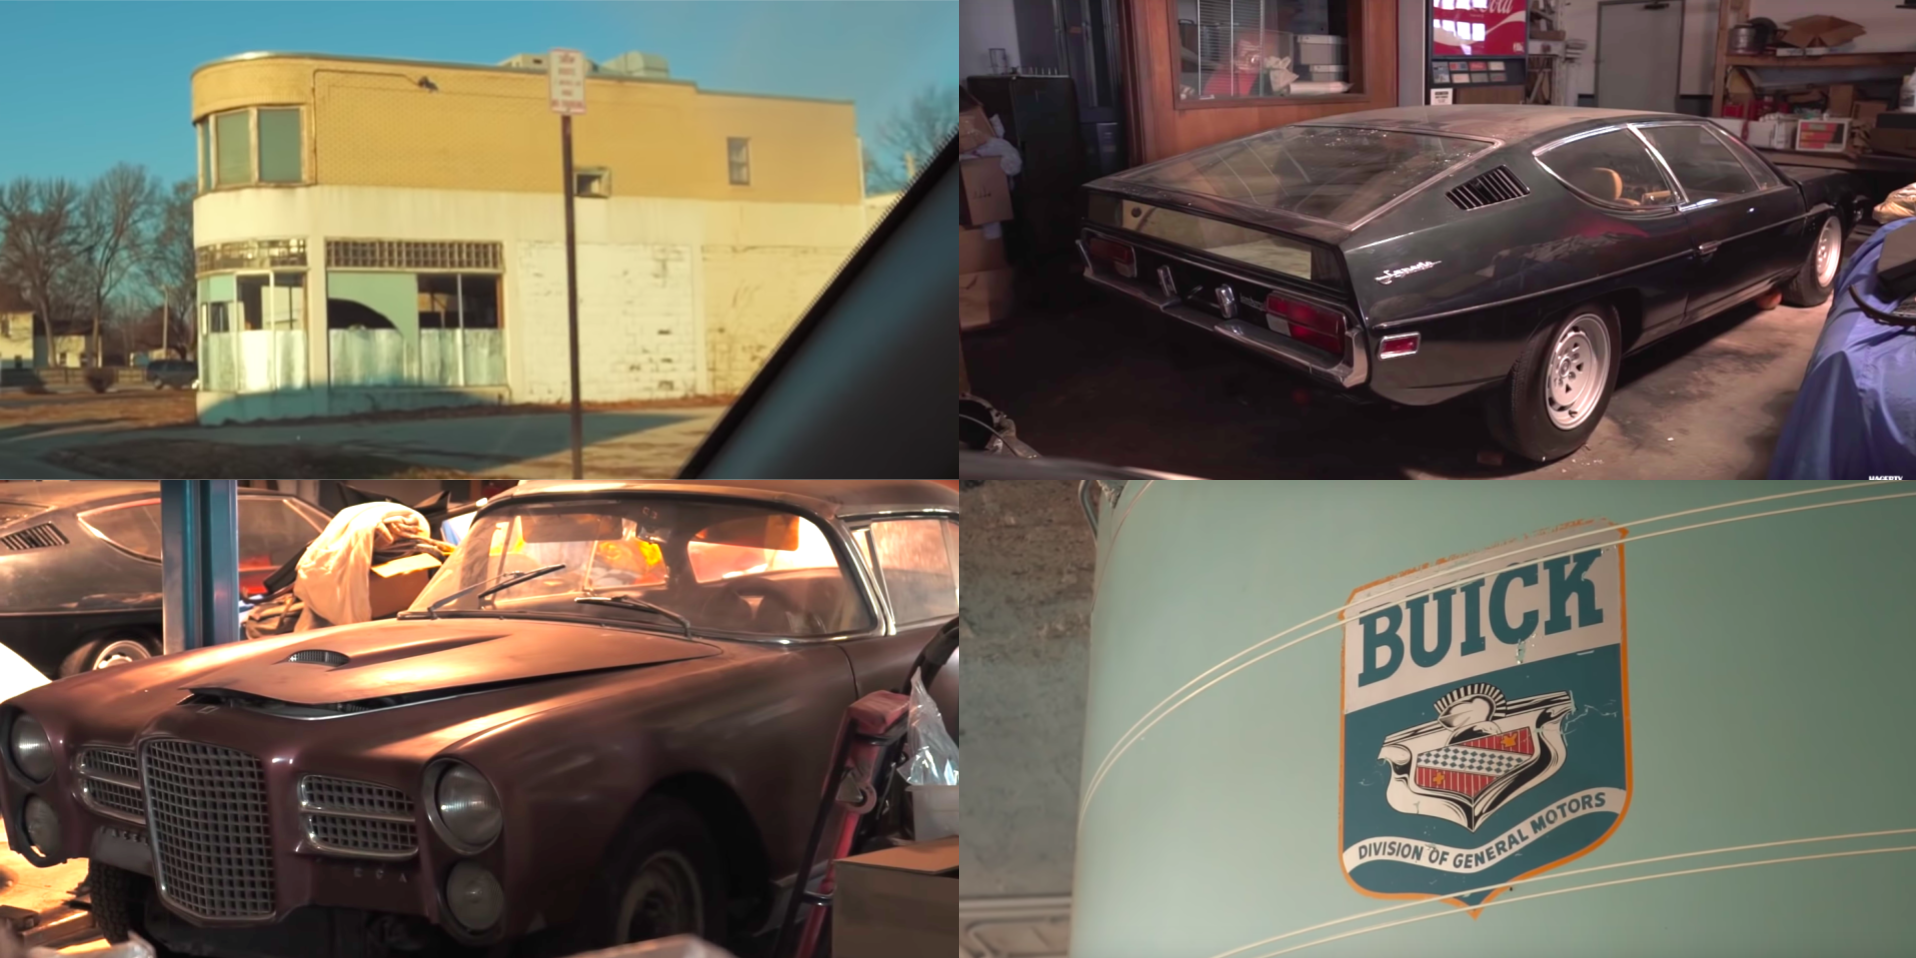 Check Out All the Neat Cars Stashed Away in This Former 1940s Buick Dealership